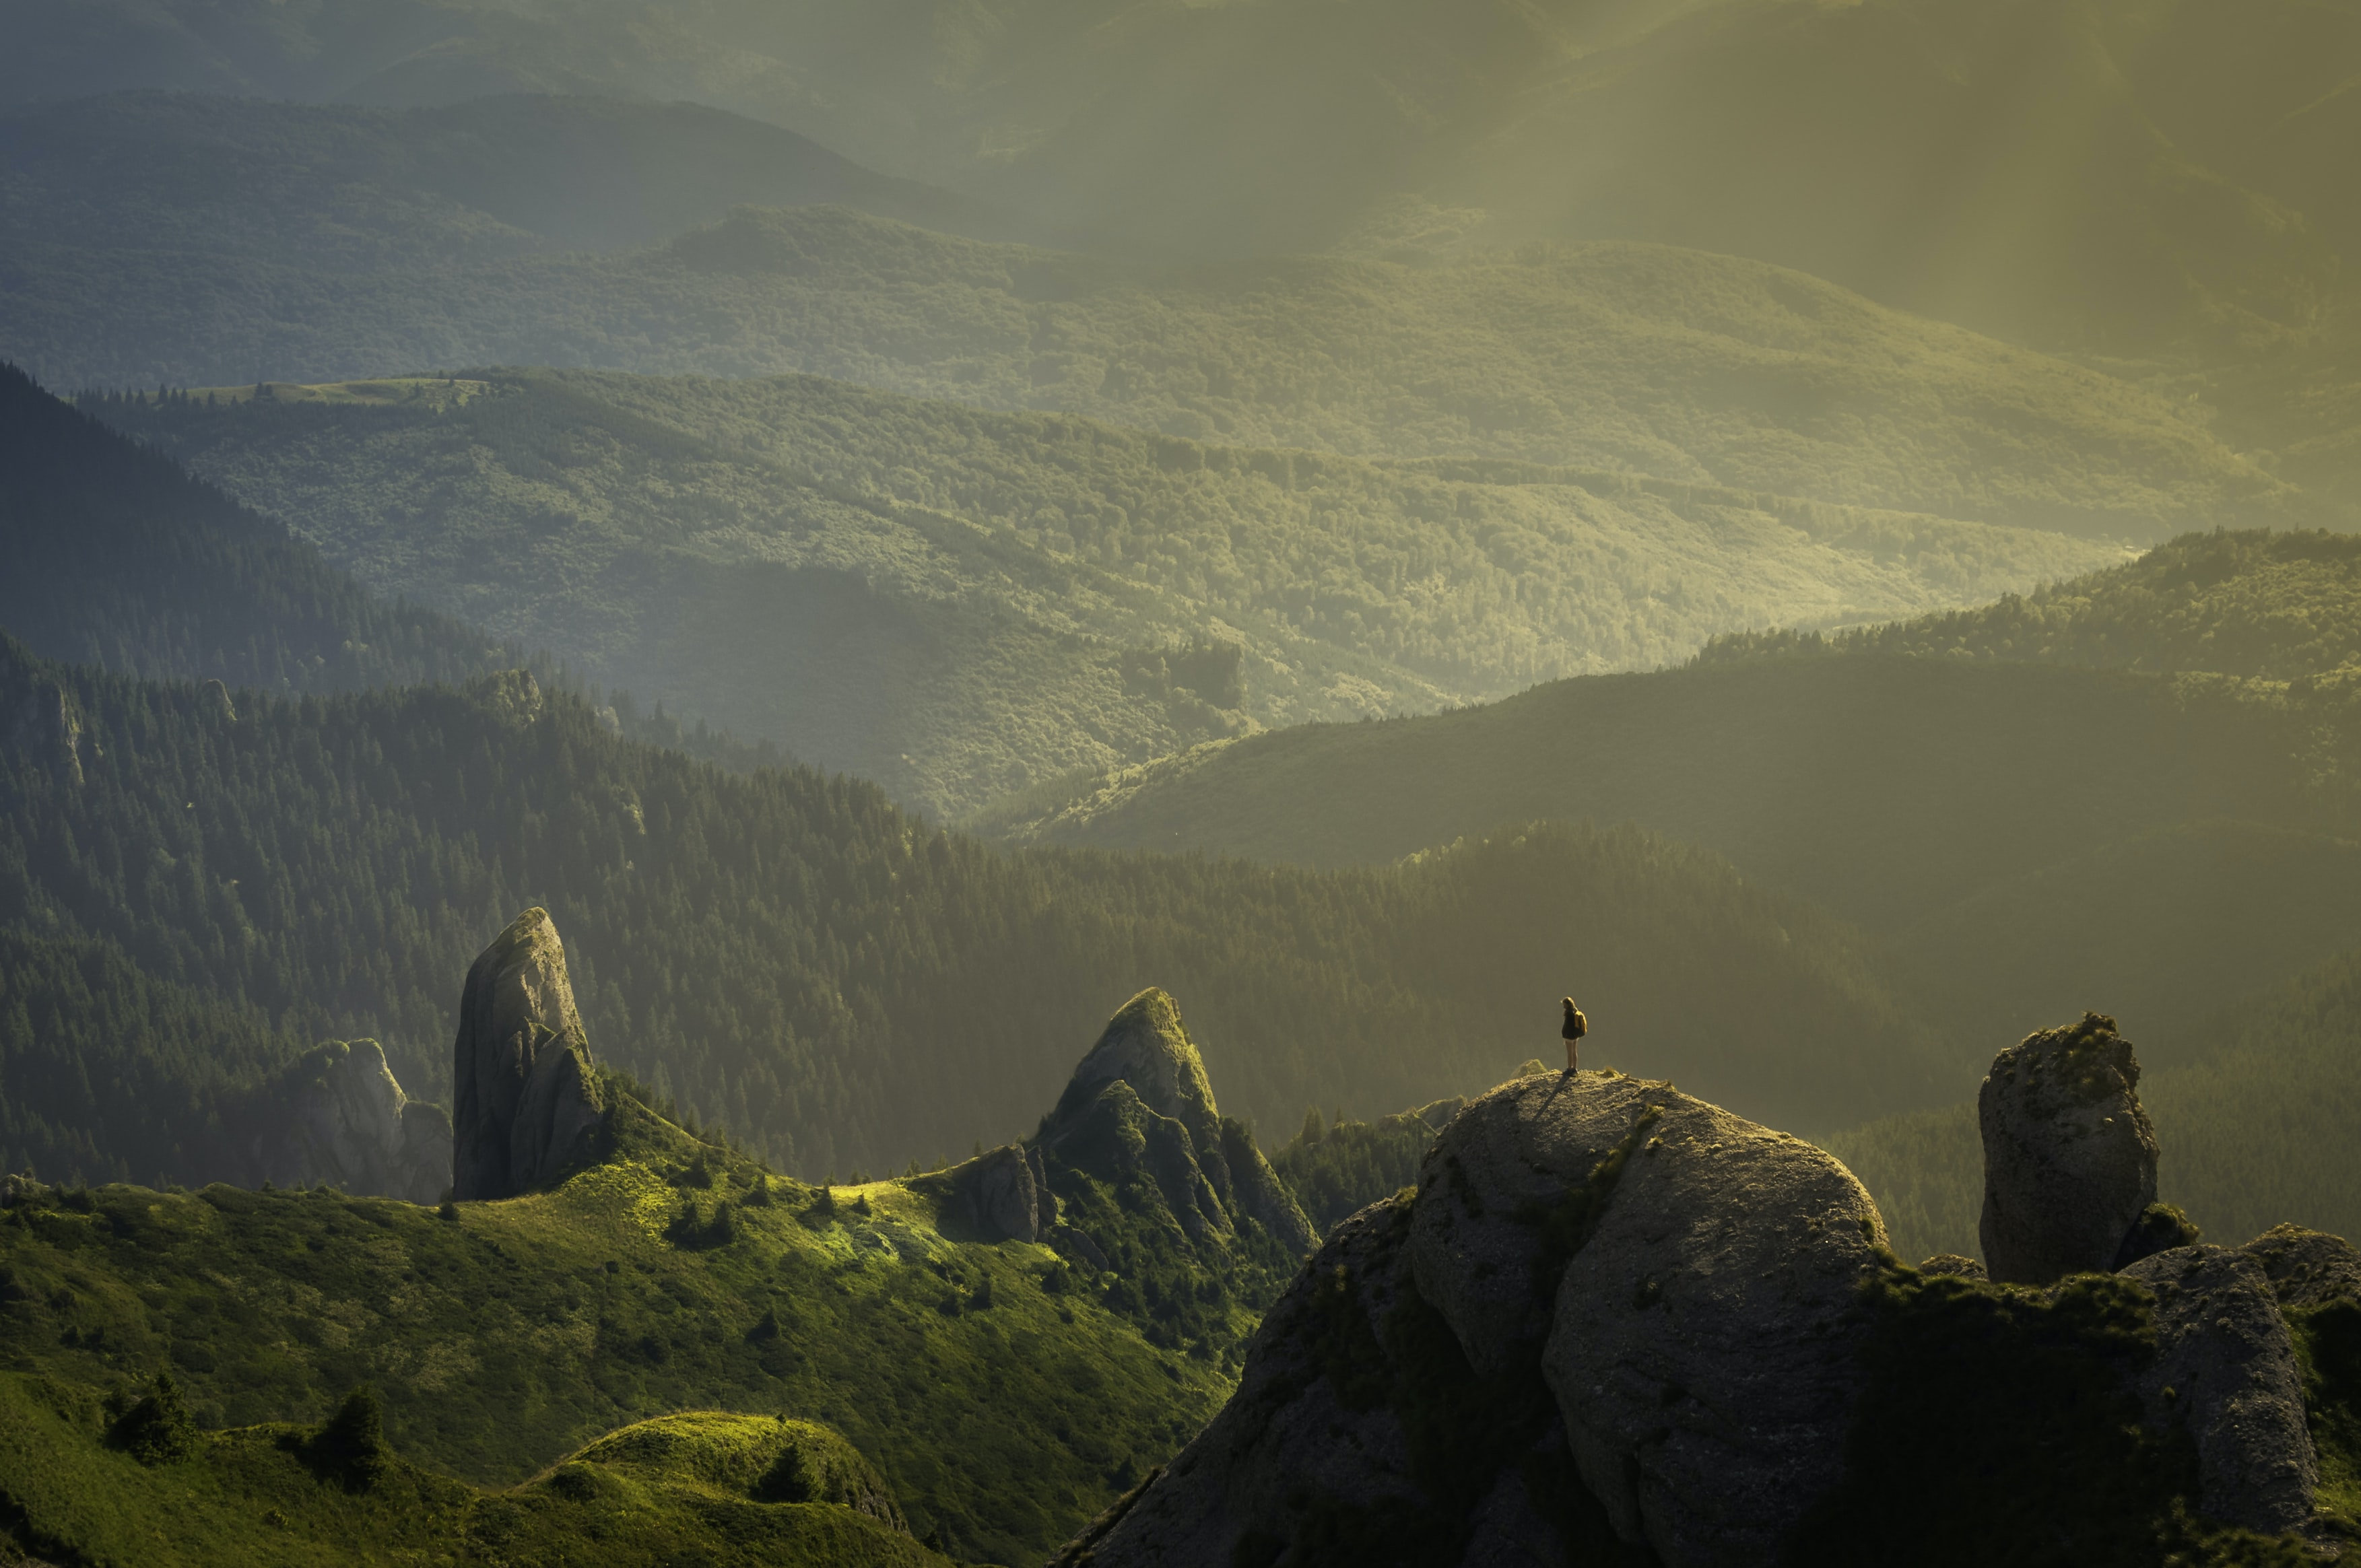 A person standing on a rock overlooking a sun-drenched undulating valley